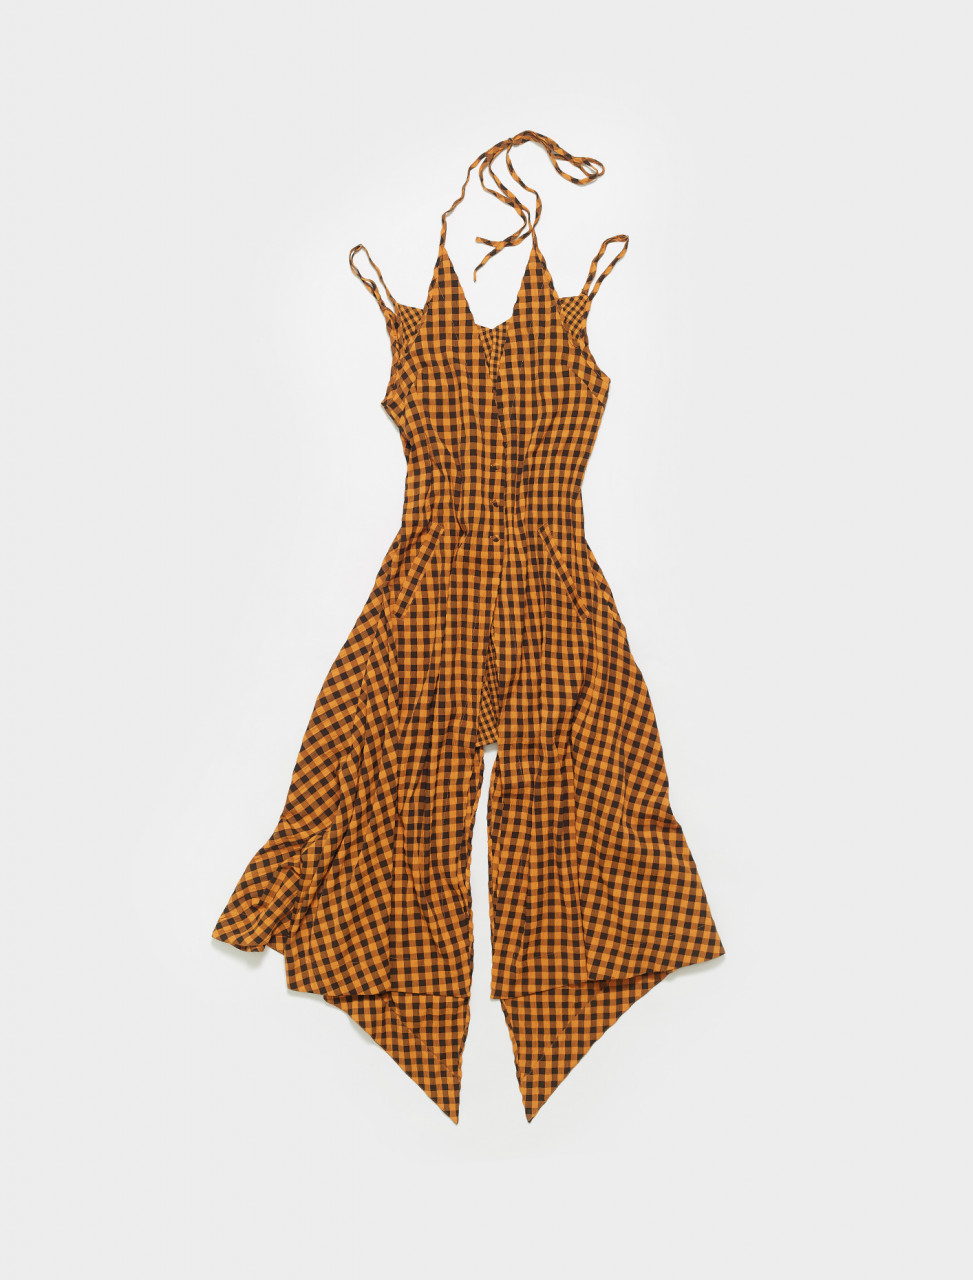 1019-EL-SS21-TL ECKHAUS LATTA DOUBLE DRESS IN TIGER LILY